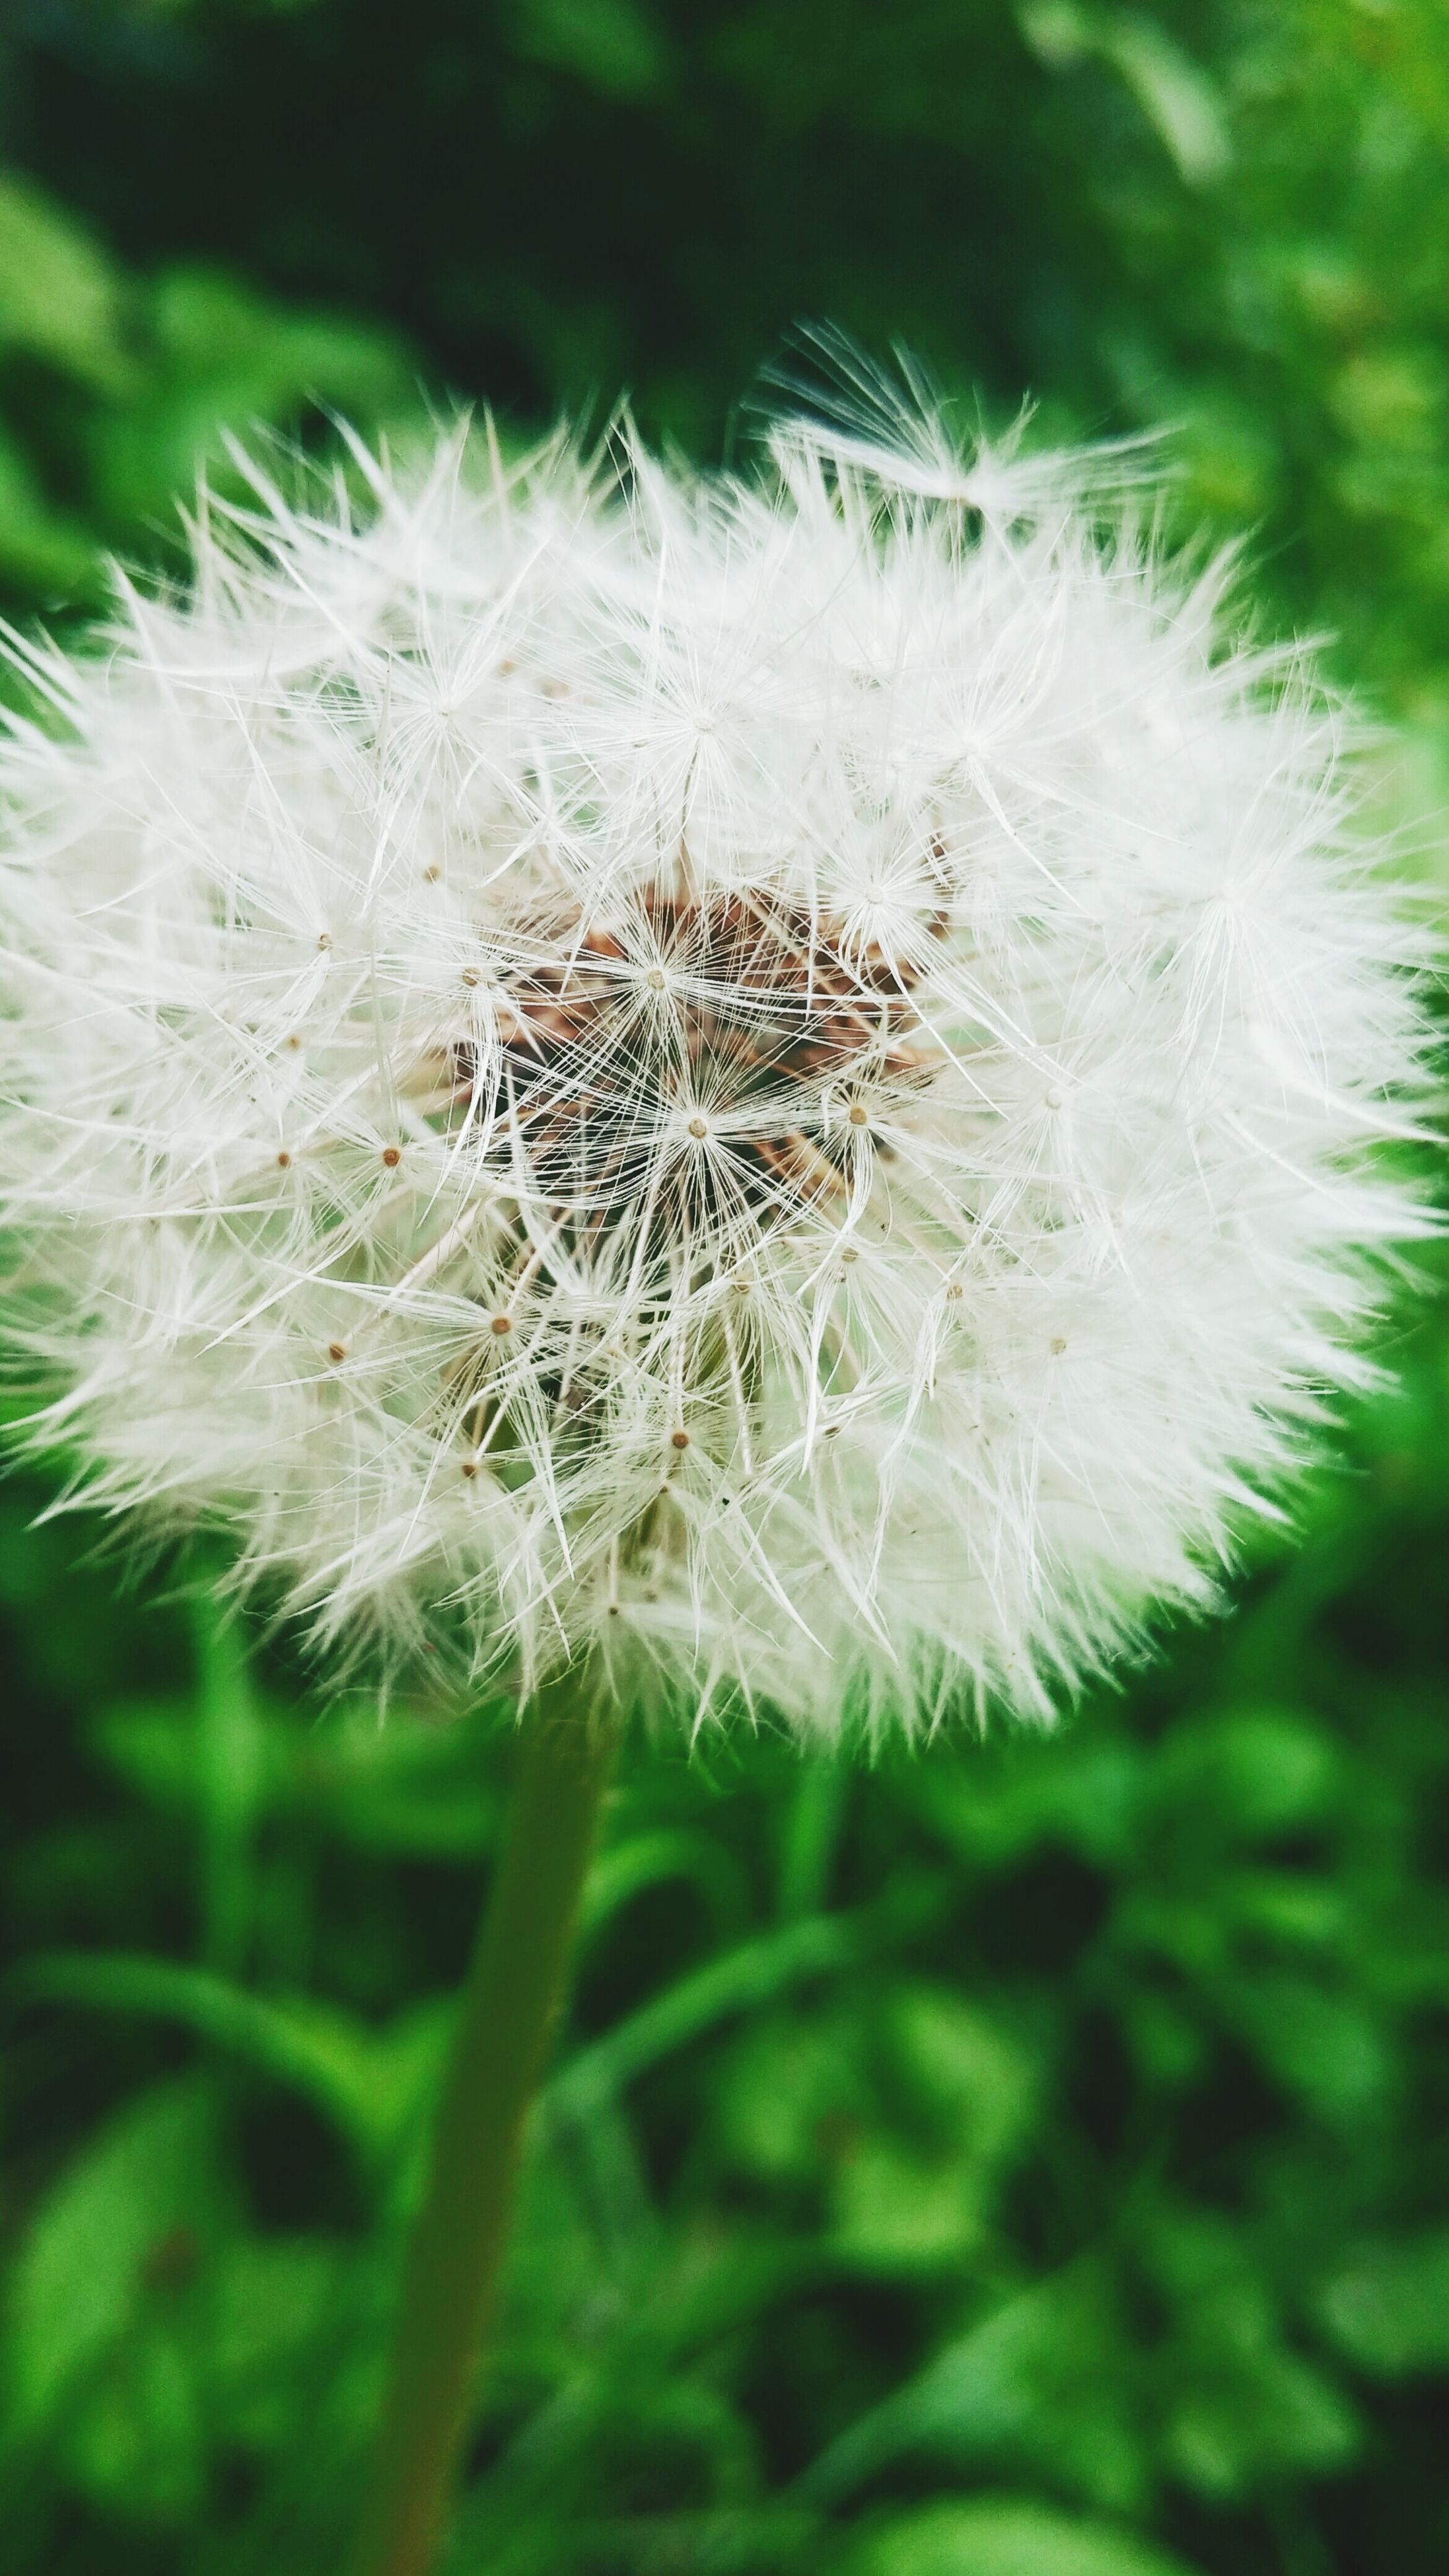 flower, fragility, nature, beauty in nature, dandelion, growth, plant, outdoors, flower head, freshness, softness, no people, dandelion seed, close-up, day, green color, wildflower, seed